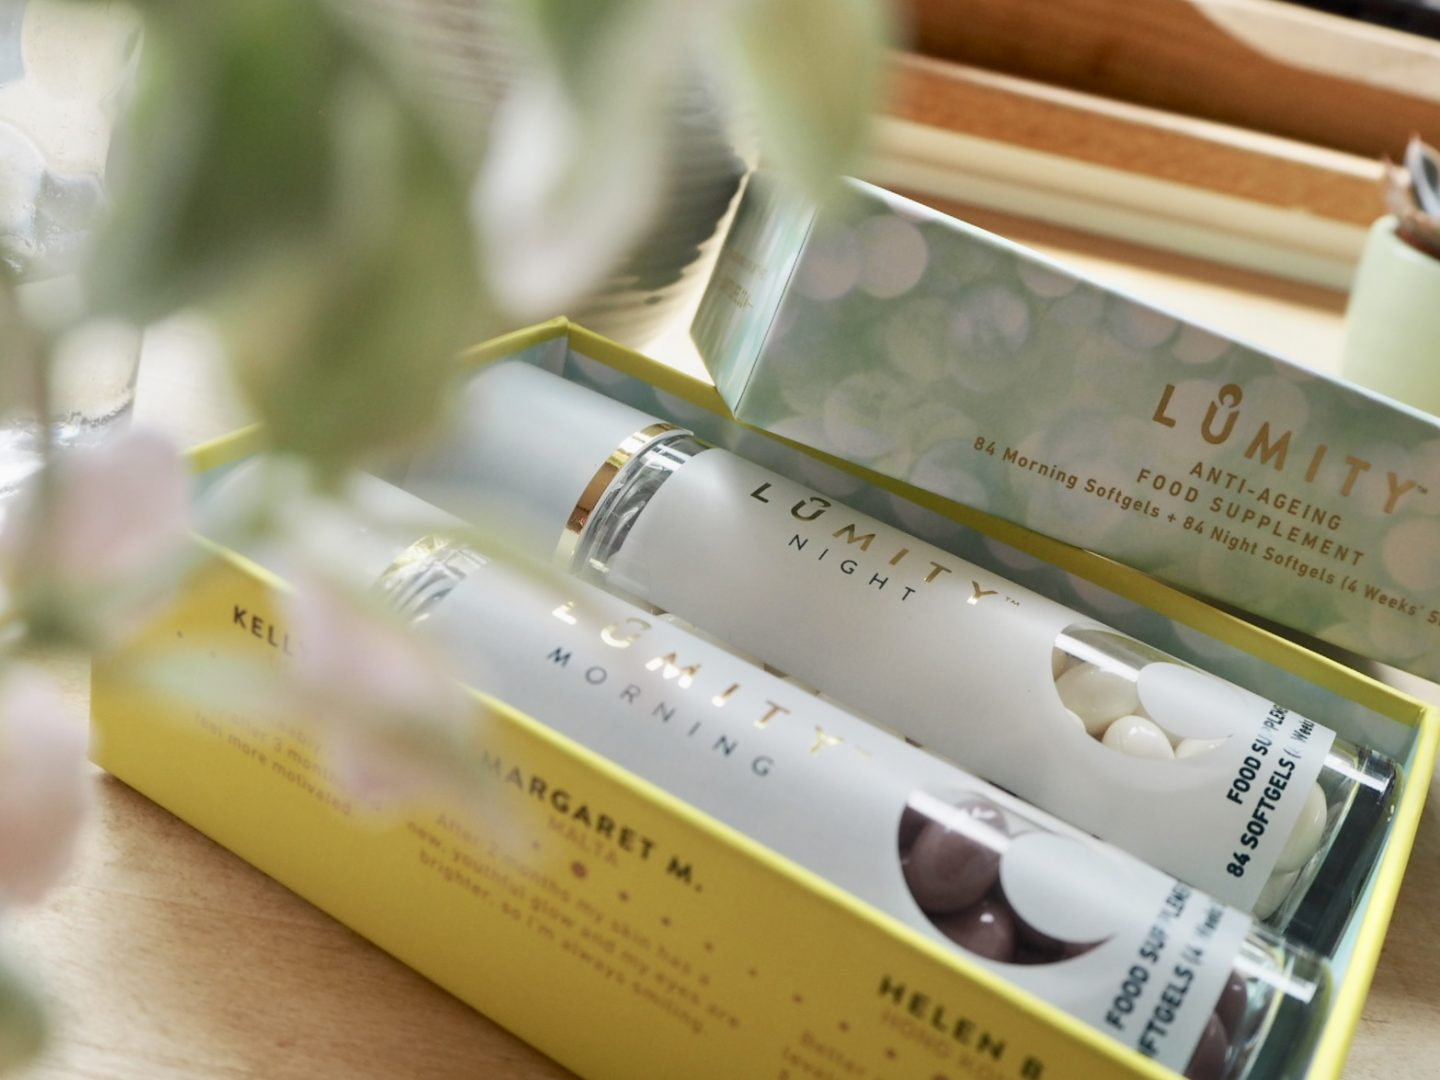 Lumity Anti-ageing food supplement